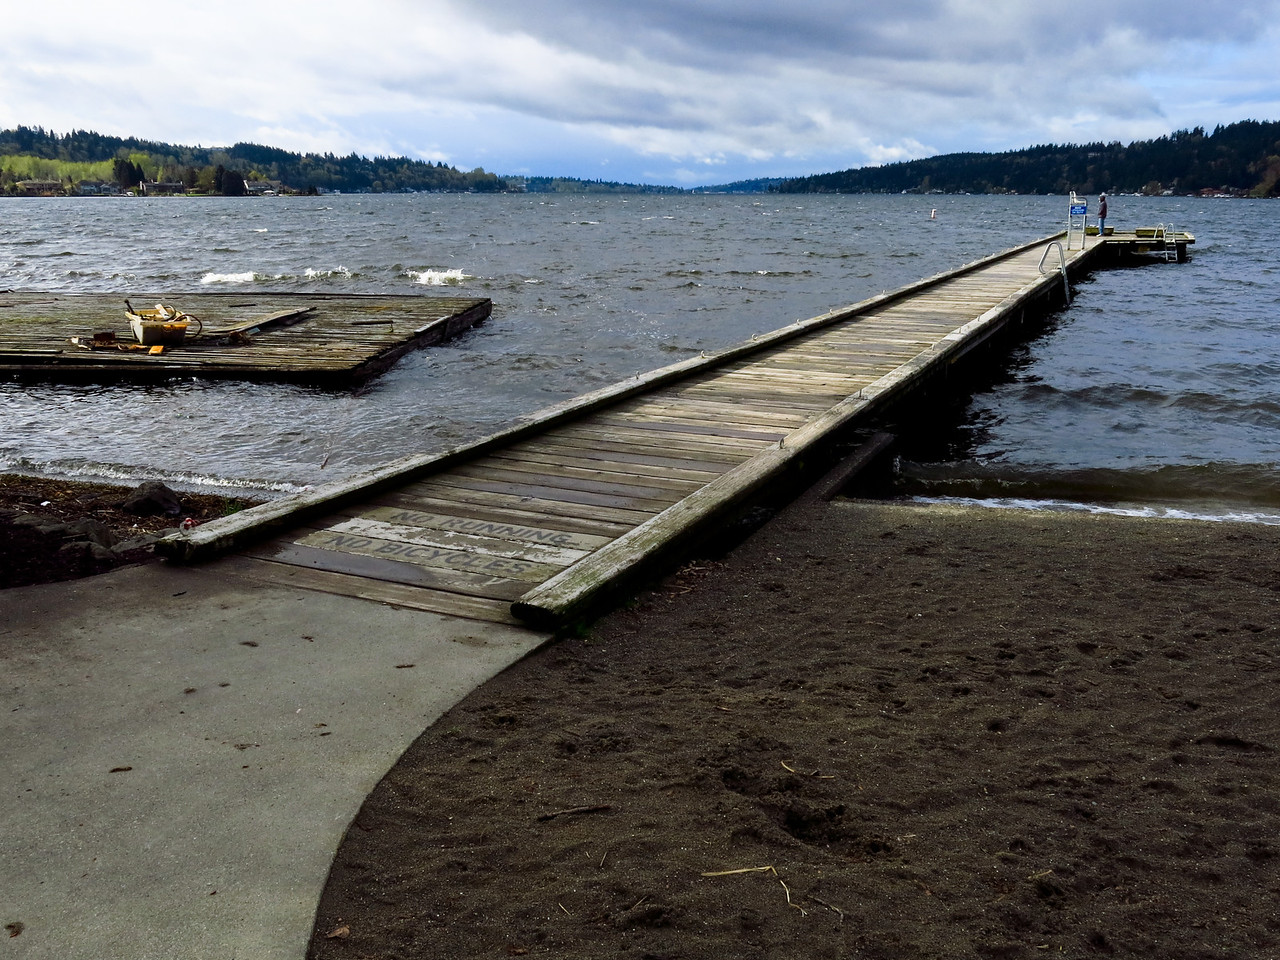 Looking south across the pier on Lake Washington at Entai Park.